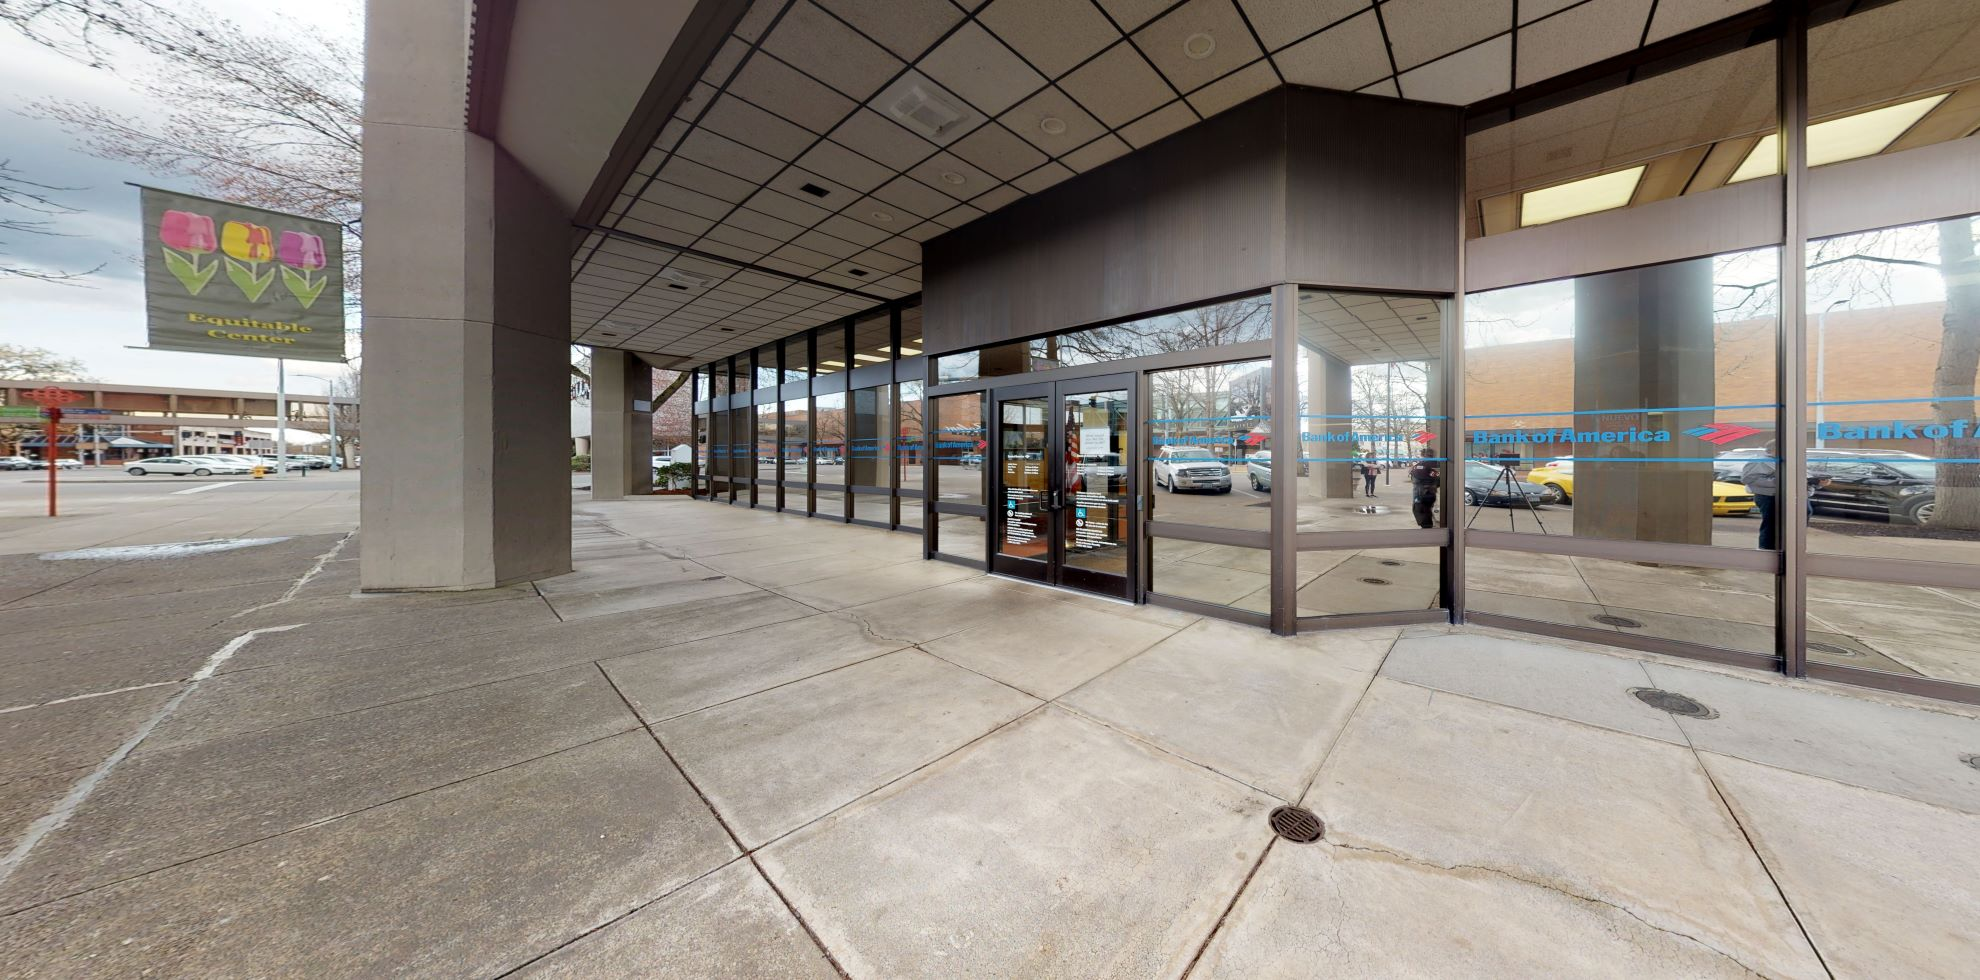 Bank of America financial center with walk-up ATM | 390 High St NE, Salem, OR 97301